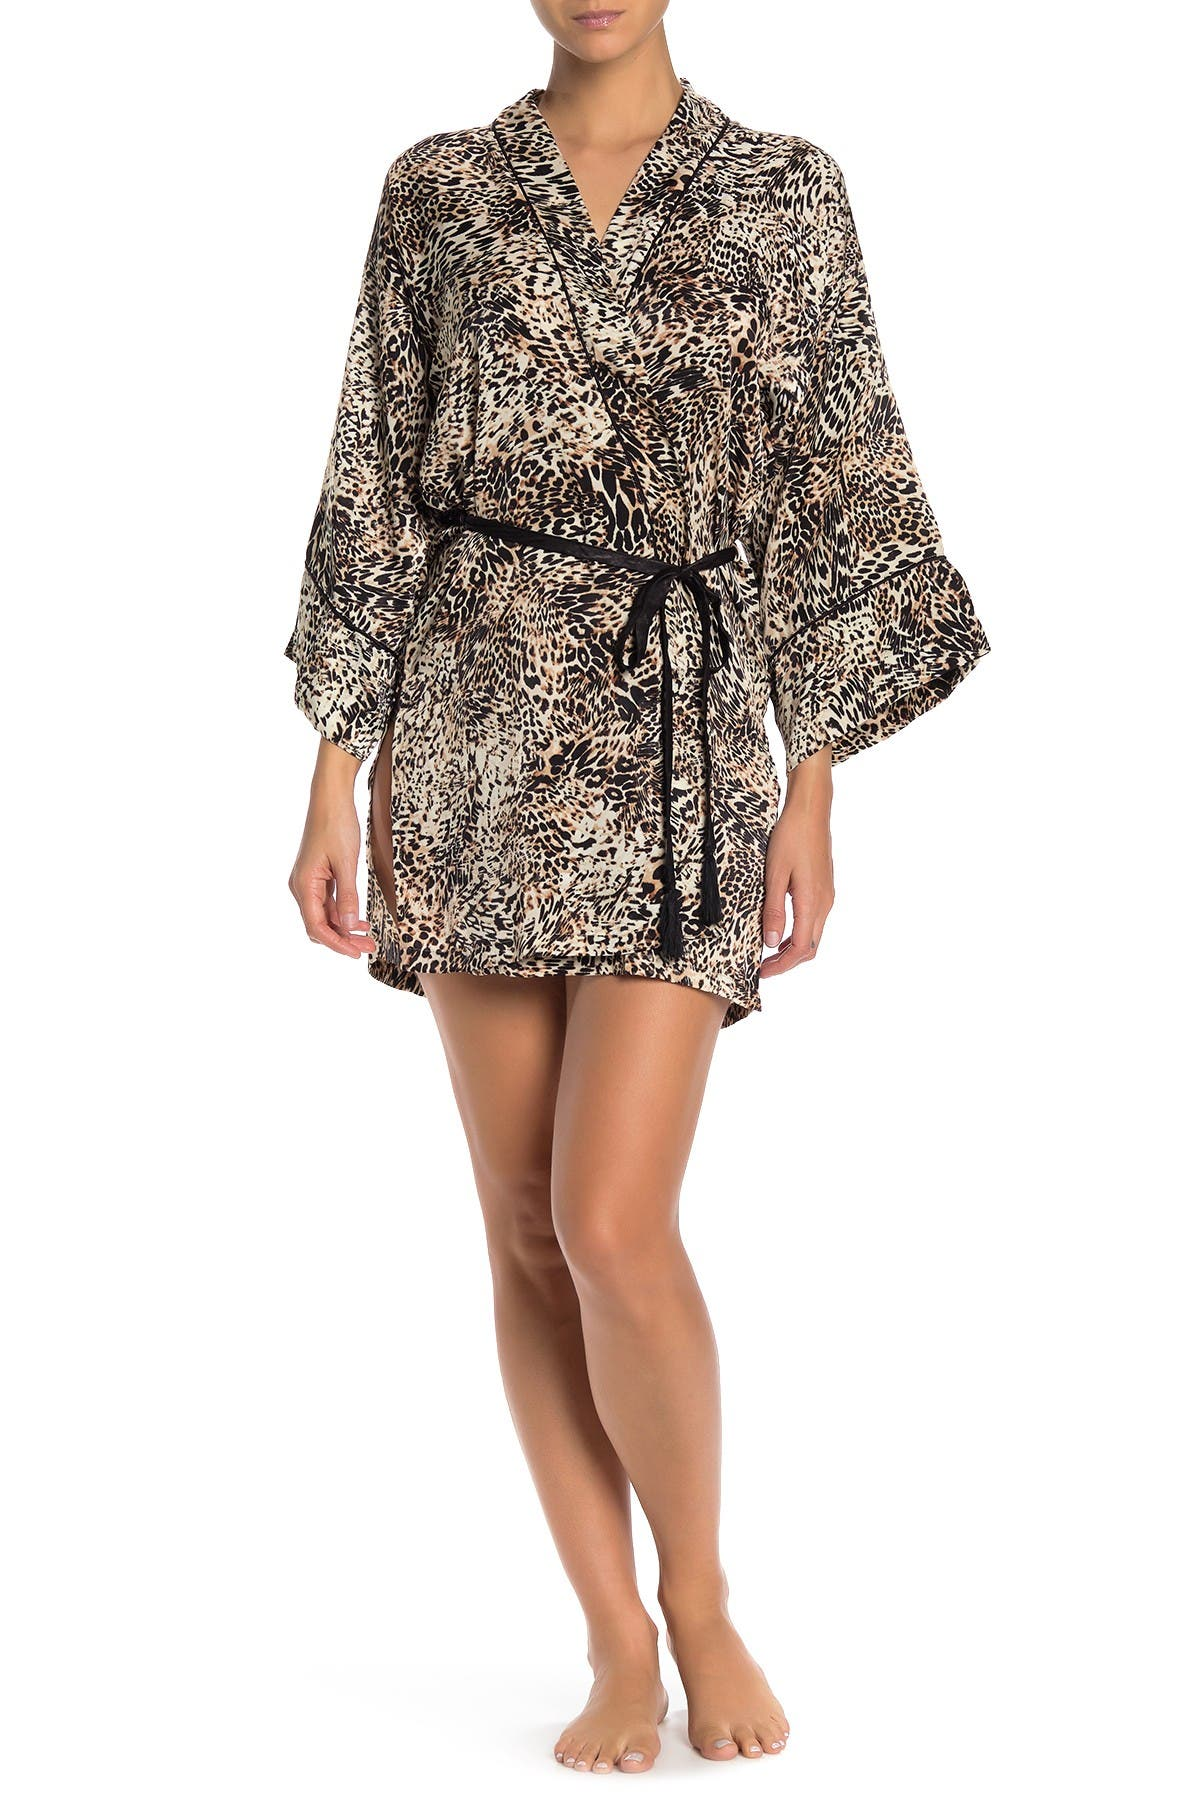 Image of In Bloom by Jonquil Animal Print Robe